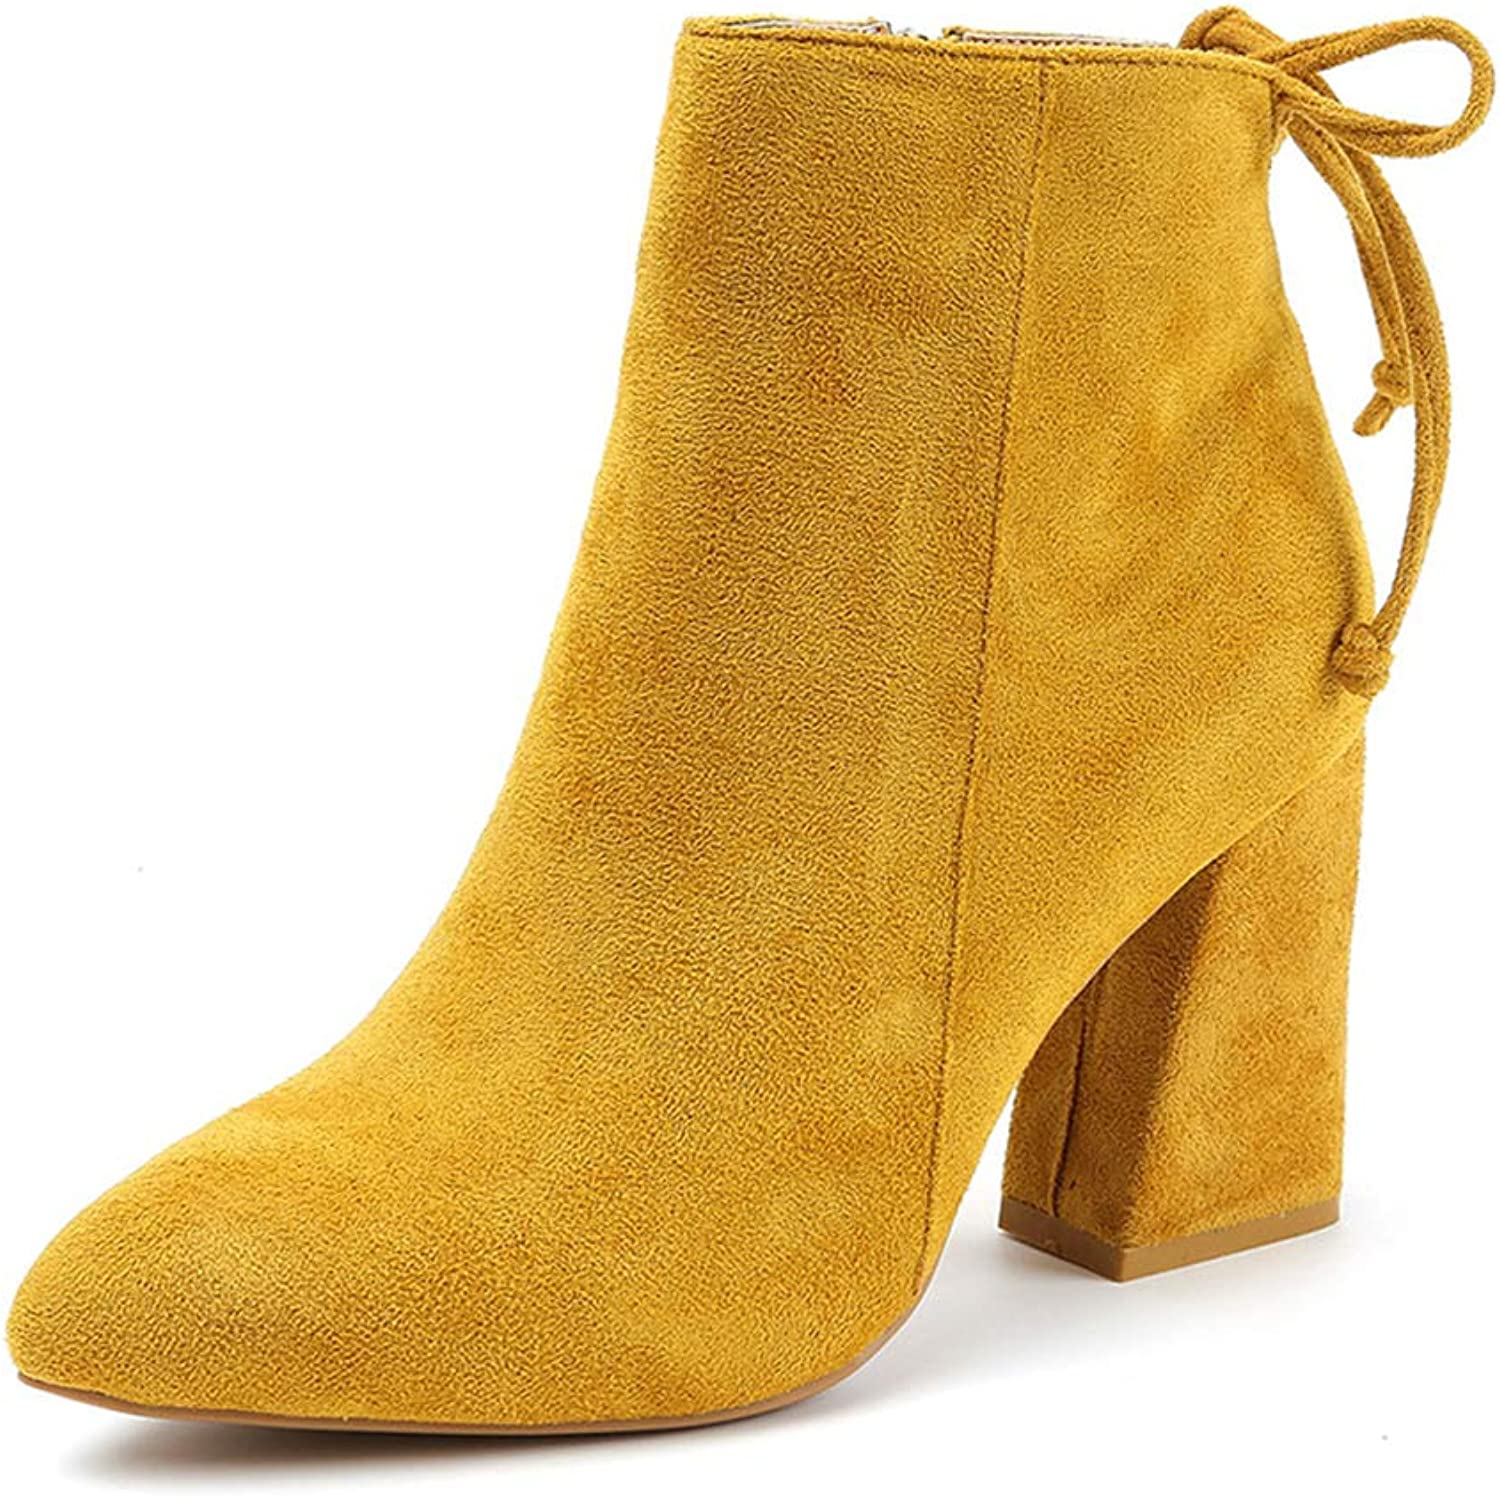 FORTUN Winter Women's shoes Warm Martin Boots Fashion Ankle Boots Casual shoes